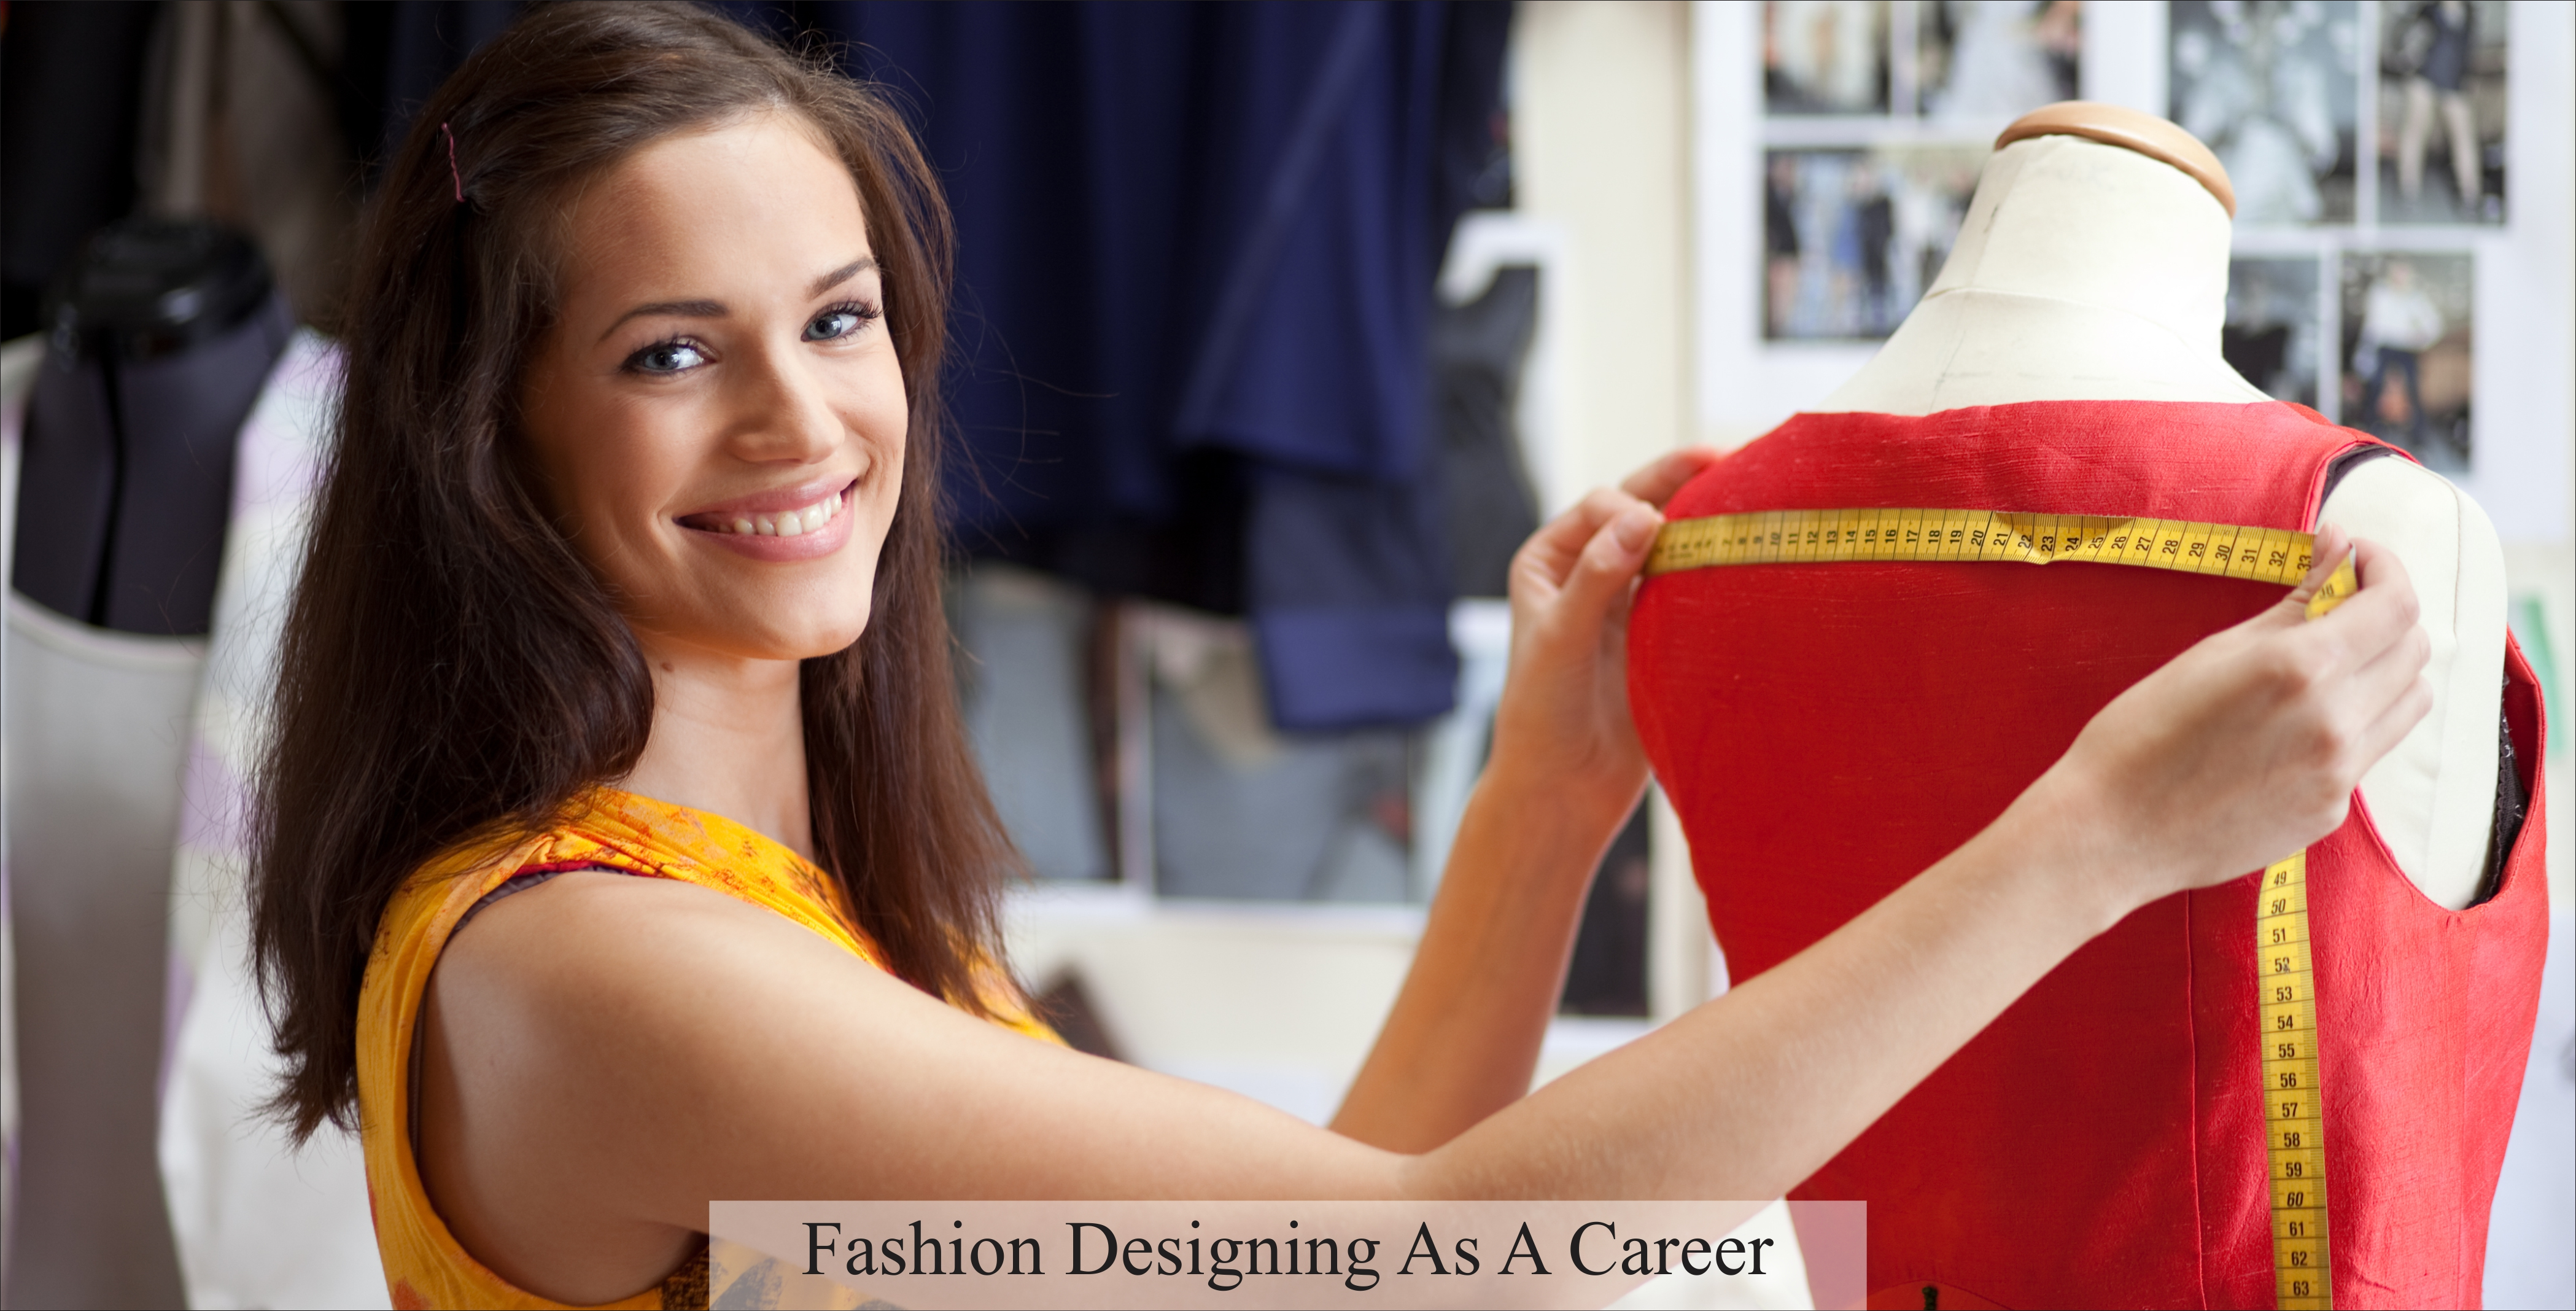 Are You Ready for your Career in Fashion?